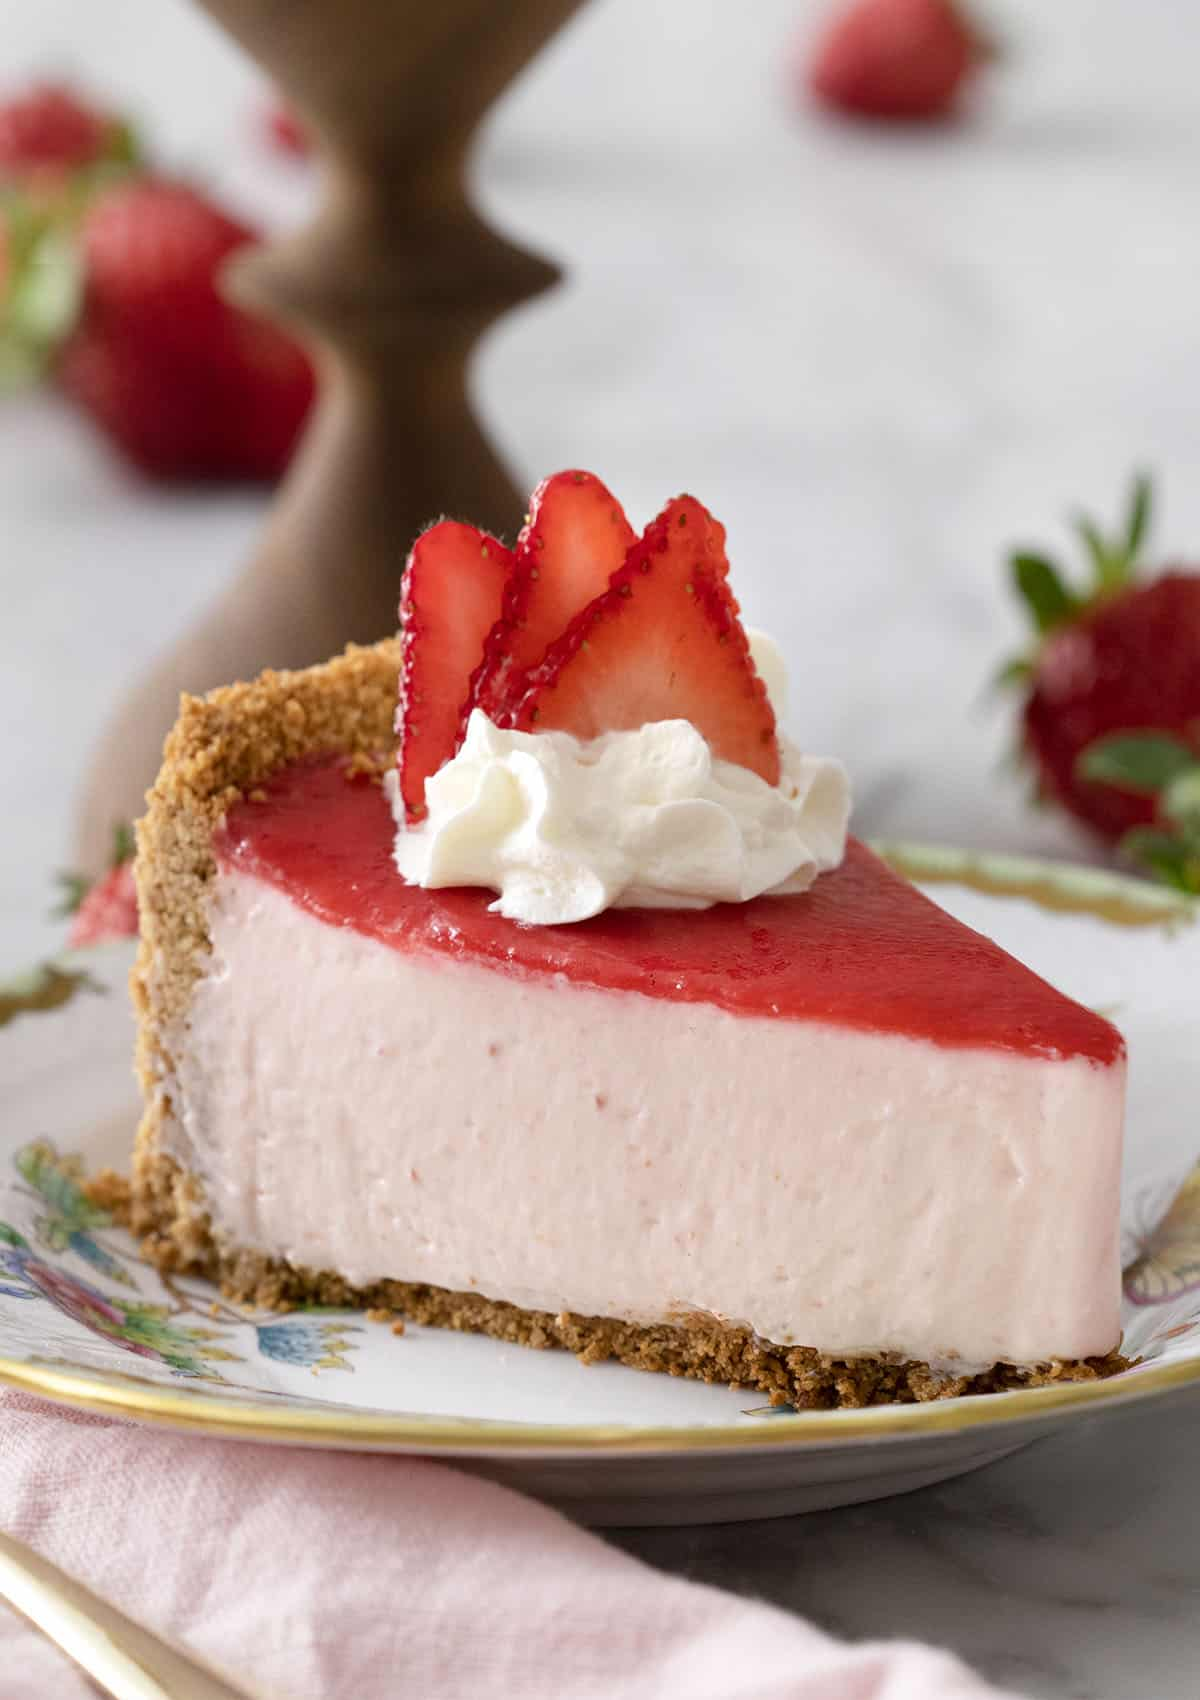 A piece of no bake strawberry cheesecake topped with a pink reduction and whipped cream on a porcelain plate.